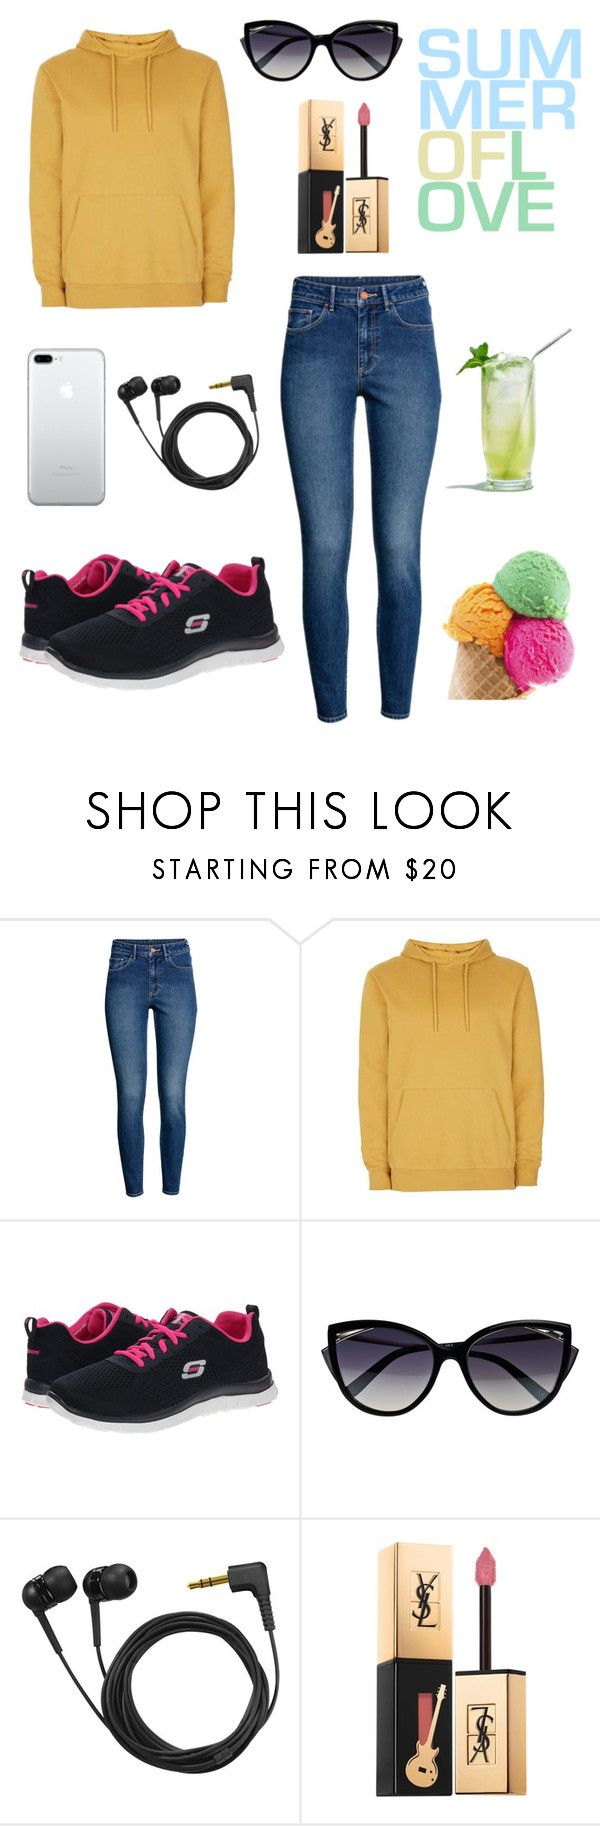 """""""Summer of Love (Bank Holiday Weekend in August)"""" by magic-mia ❤ liked on Polyvore featuring beauty, Skechers, La Perla, Sennheiser and Yves Saint Laurent"""